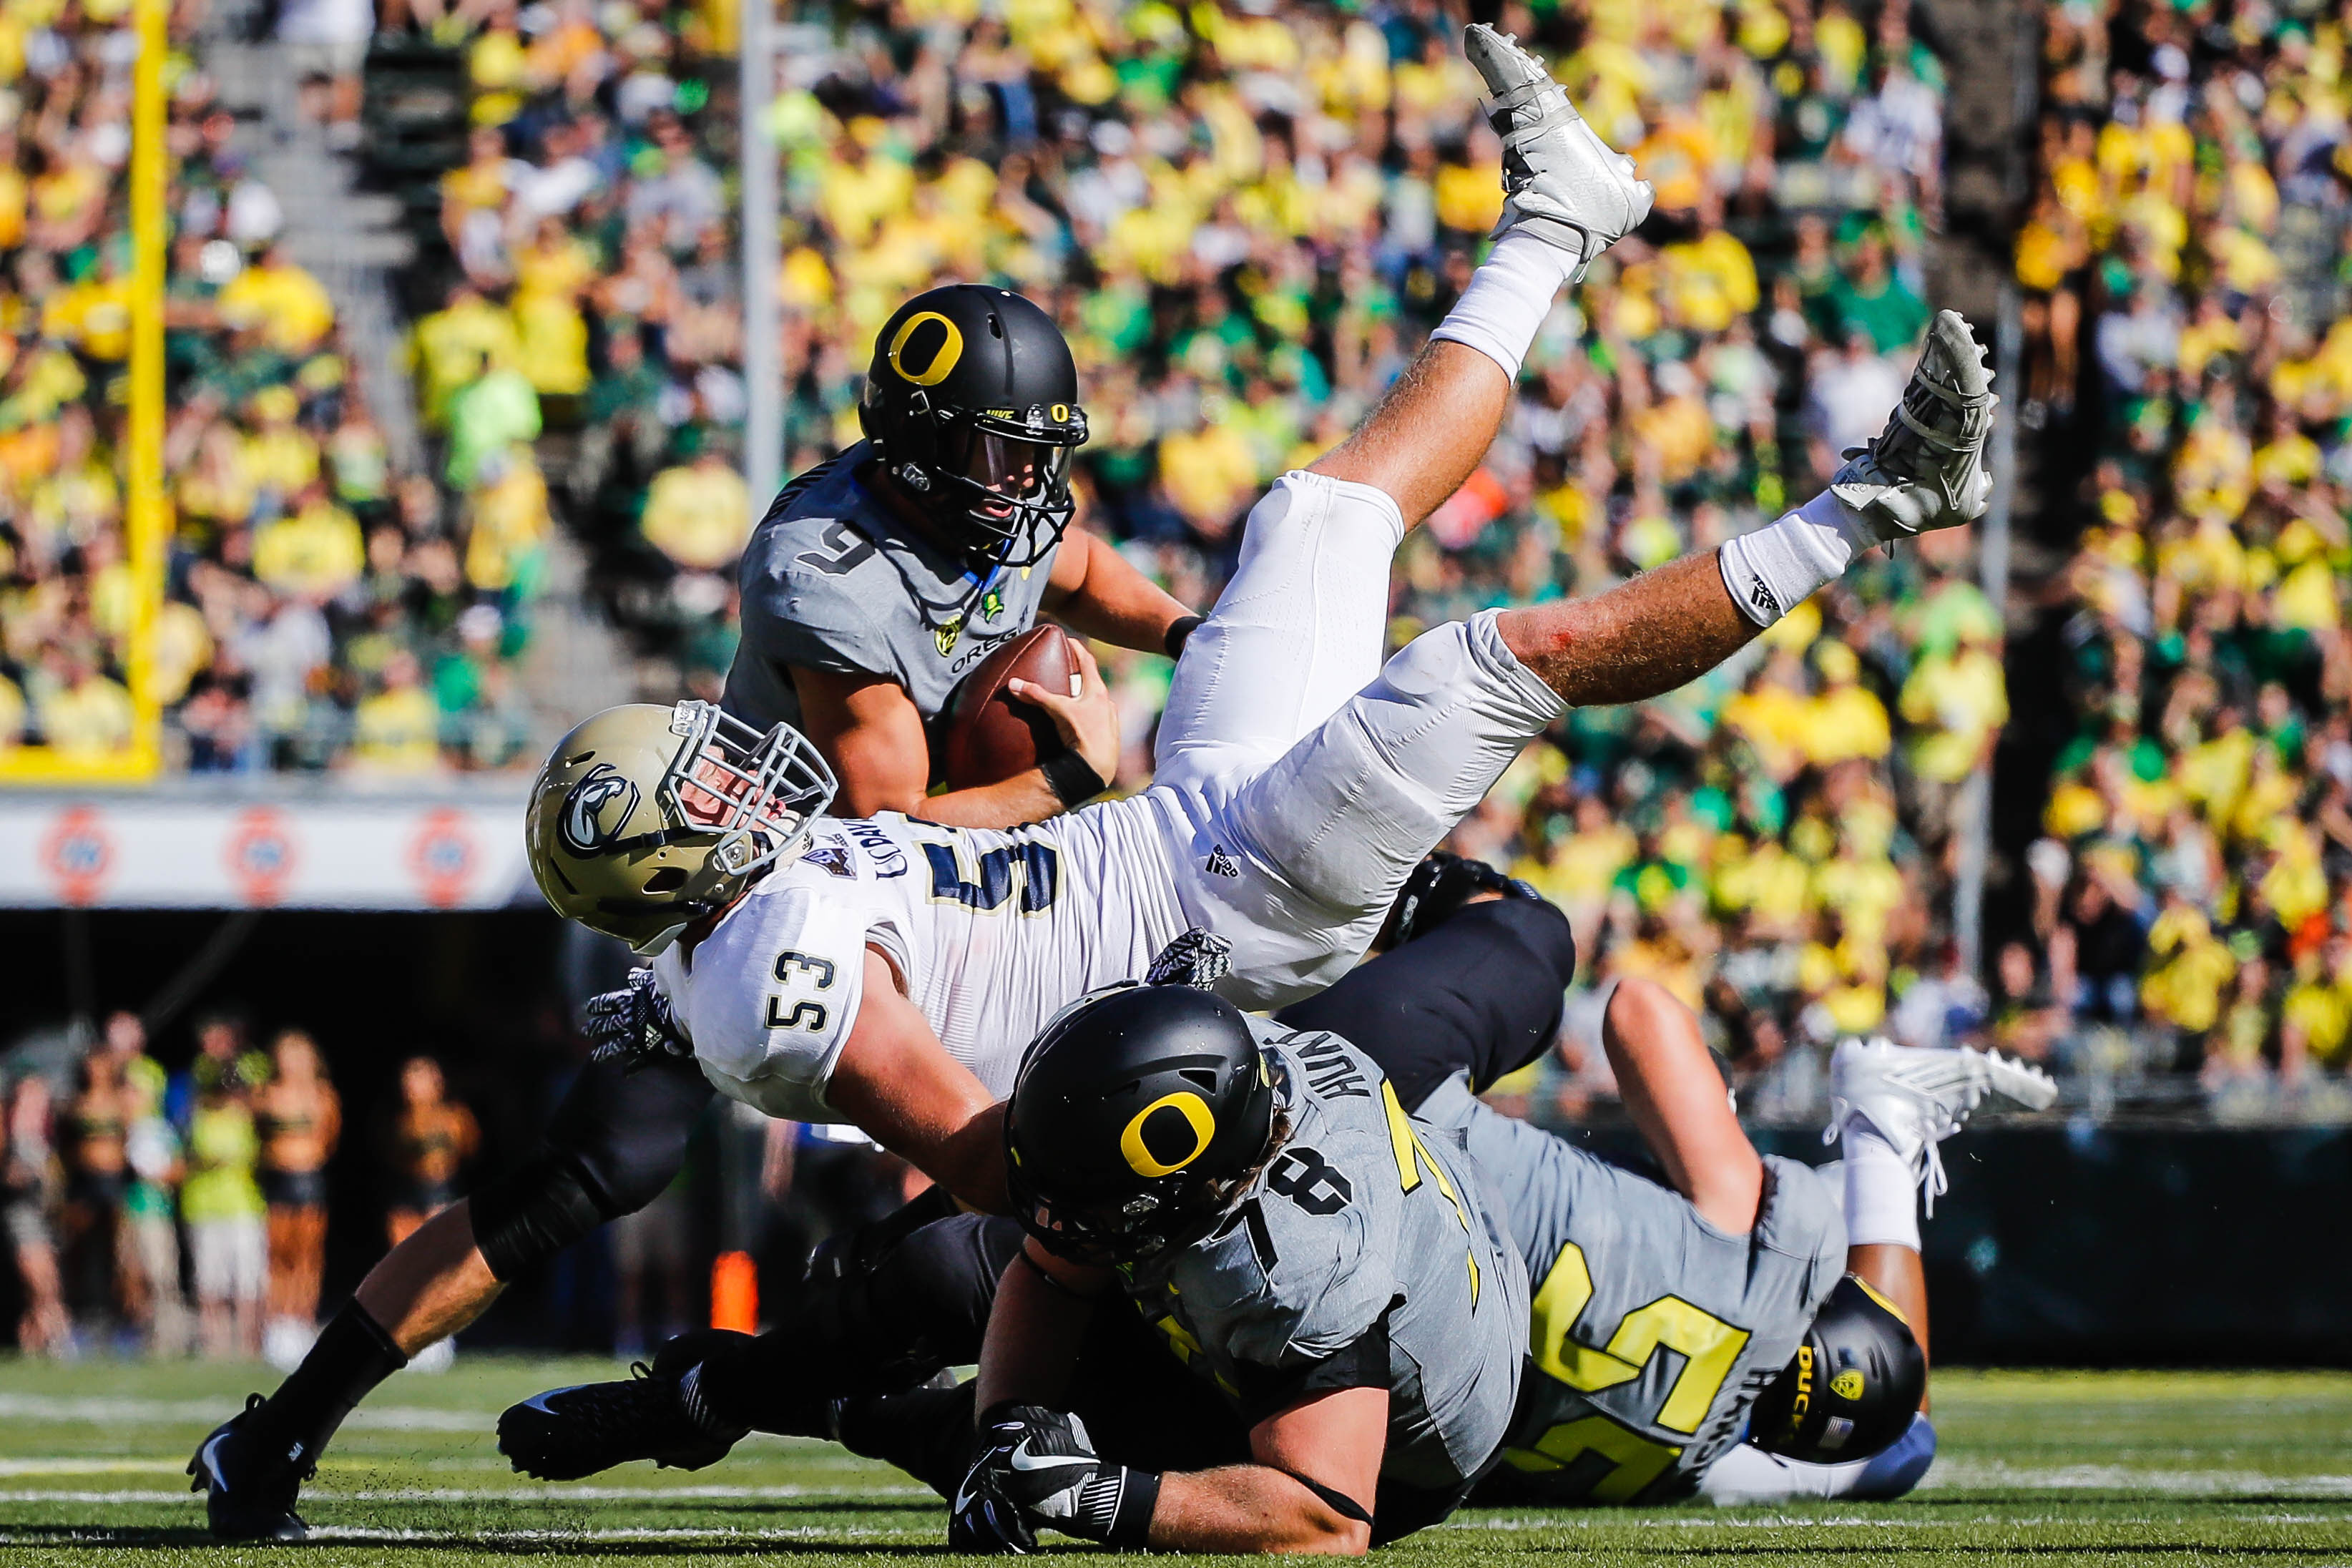 FILE - In this Sept. 3, 2016, file photo, Oregon quarterback Dakota Prukop (9), avoids a collision as UC Davis linebacker Russell Reeder (53) and Oregon offensive lineman Cameron Hunt (78) tangle during an NCAA college football game in Eugene, Ore. Prukop